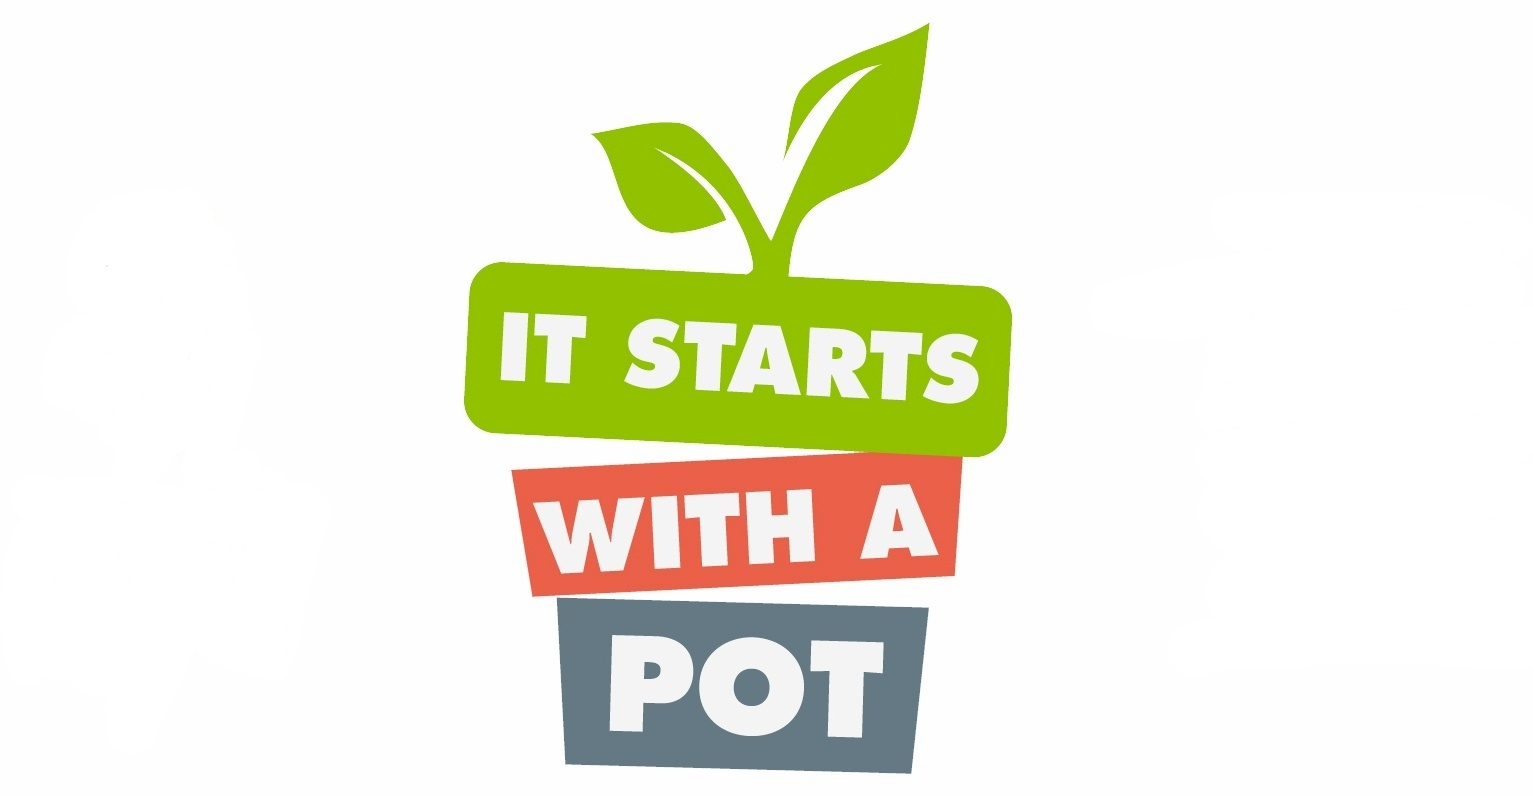 it_starts_with_a_pot-084692-edited.jpg